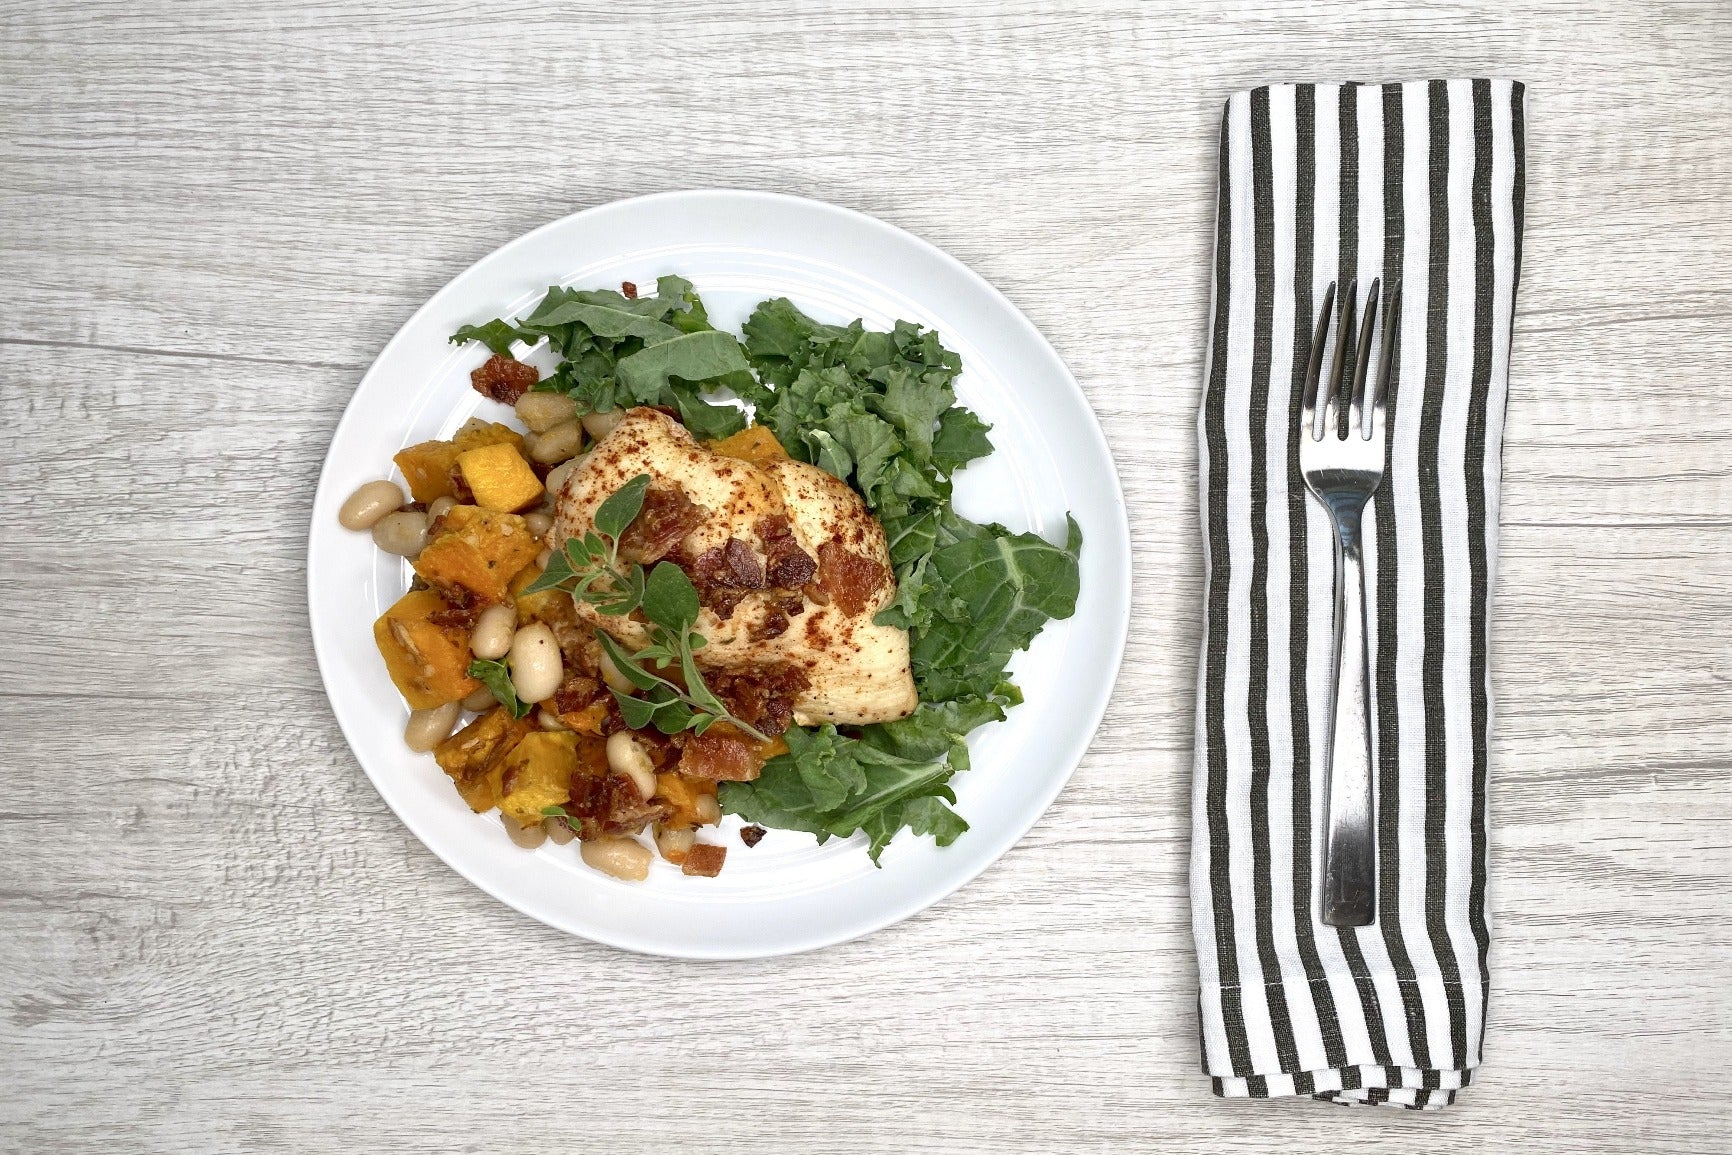 Roasted Butternut Squash & Bacon w/ Kale & Herbed Chicken